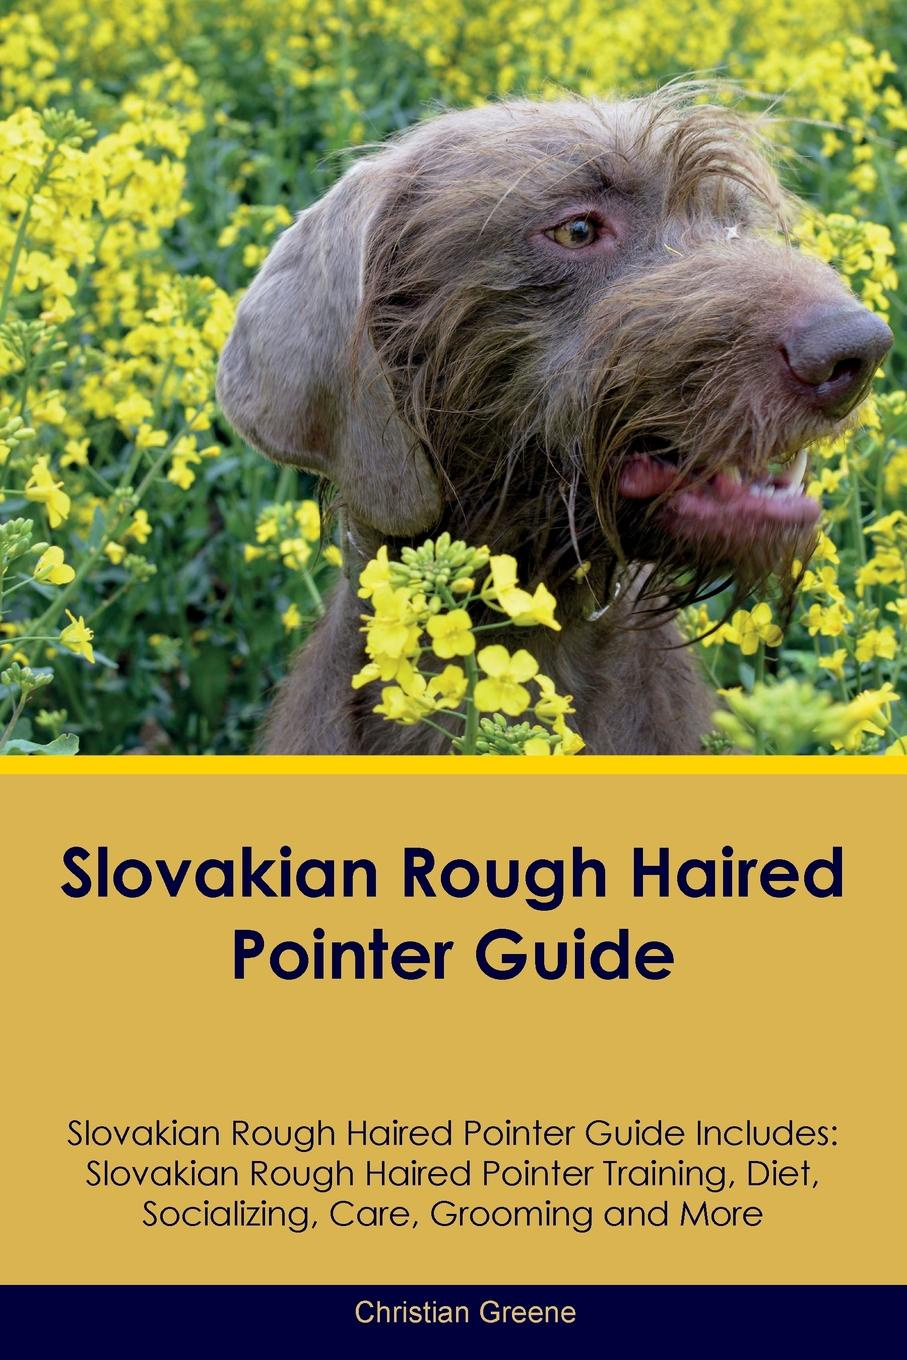 Christian Greene Slovakian Rough Haired Pointer Guide Slovakian Rough Haired Pointer Guide Includes. Slovakian Rough Haired Pointer Training, Diet, Socializing, Care, Grooming, Breeding and More the rough guide to tanzania